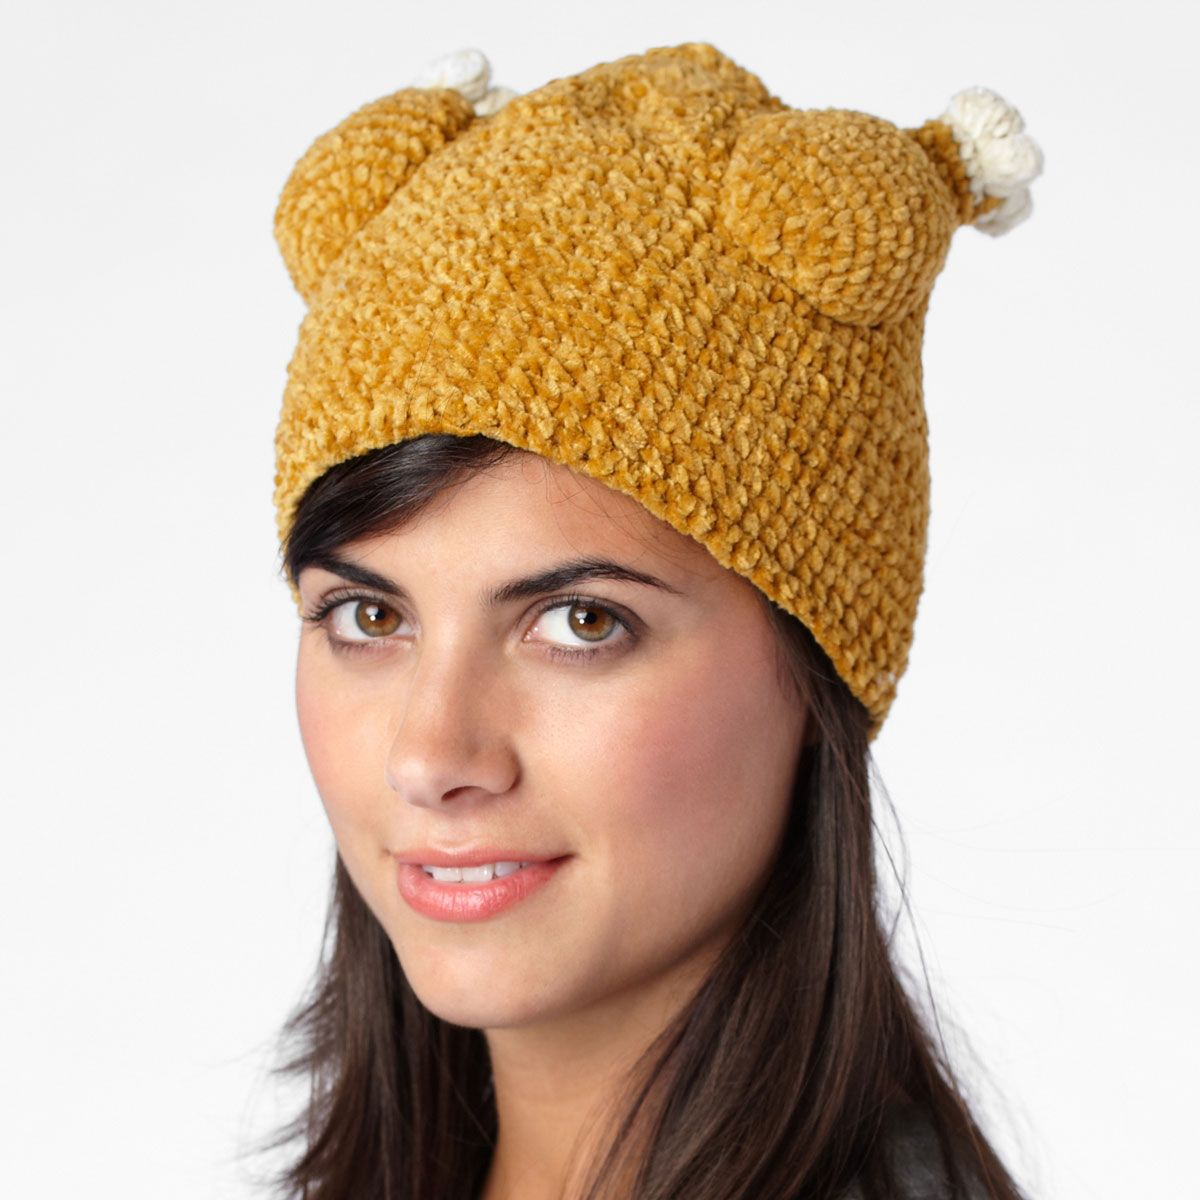 7d94c66b886 Knit cap that looks just like an oven-roasted turkey